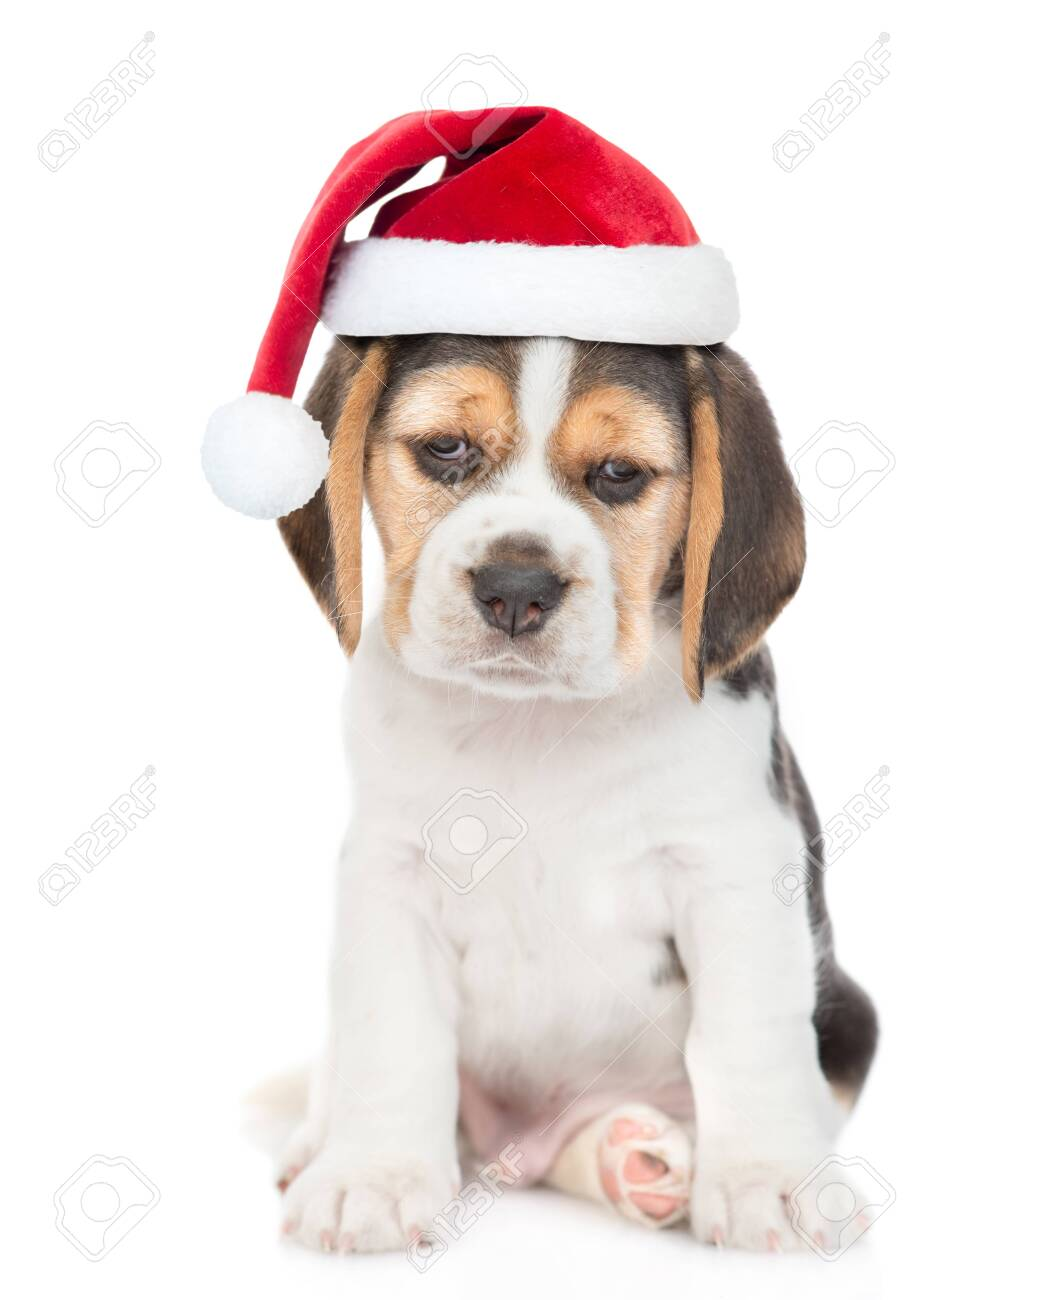 Beagle Puppy In Red Christmas Hat Looking At Camera Isolated Stock Photo Picture And Royalty Free Image Image 128865711